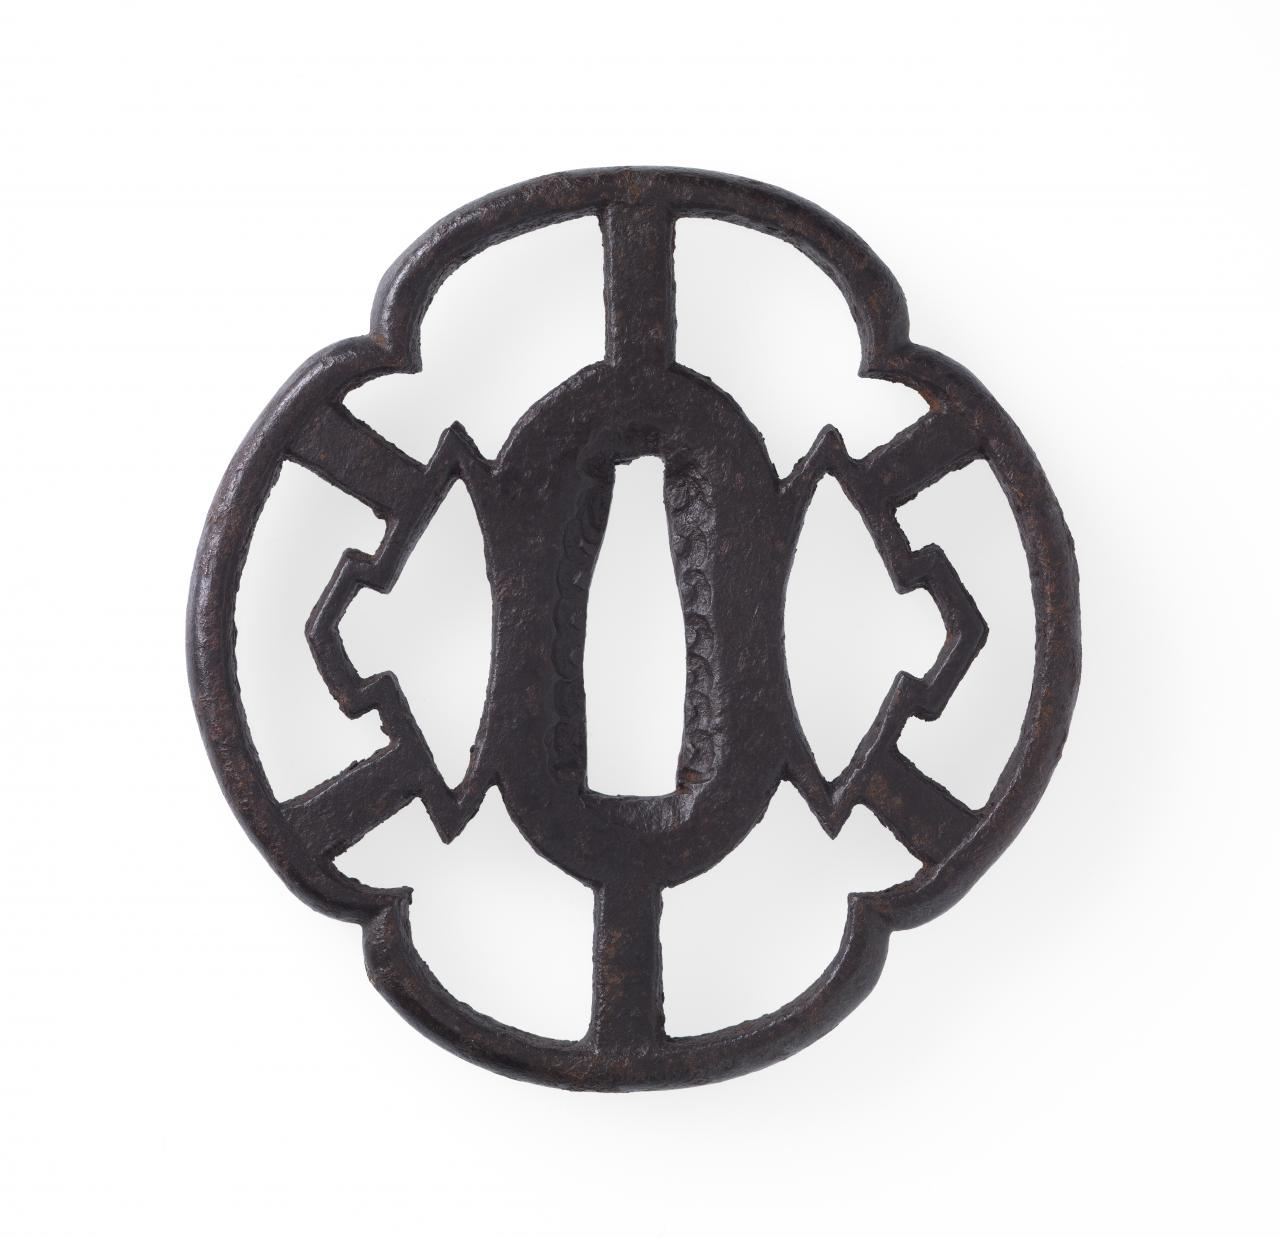 Sword guard with water chestnut crest design